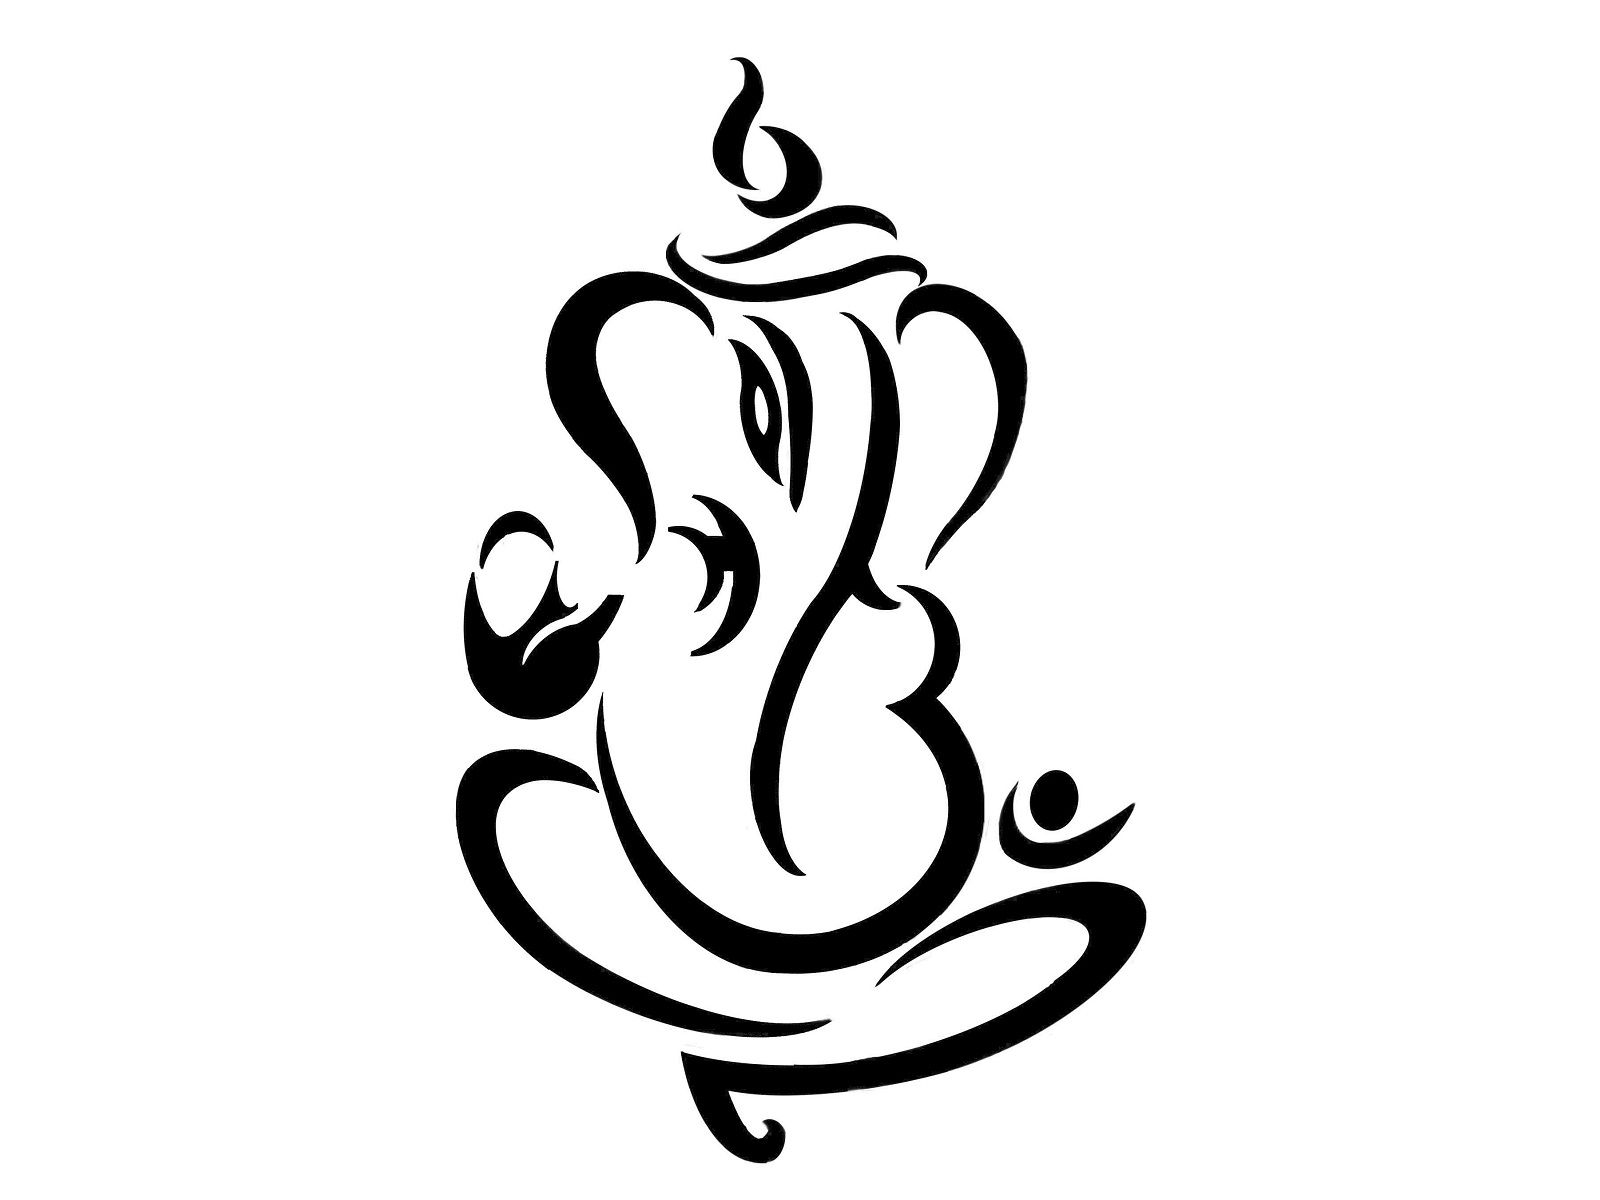 You May Also Like Ganesha Black And White High Resolution Ganesh Tattoo Ganesha Pictures Ganesha Tattoo